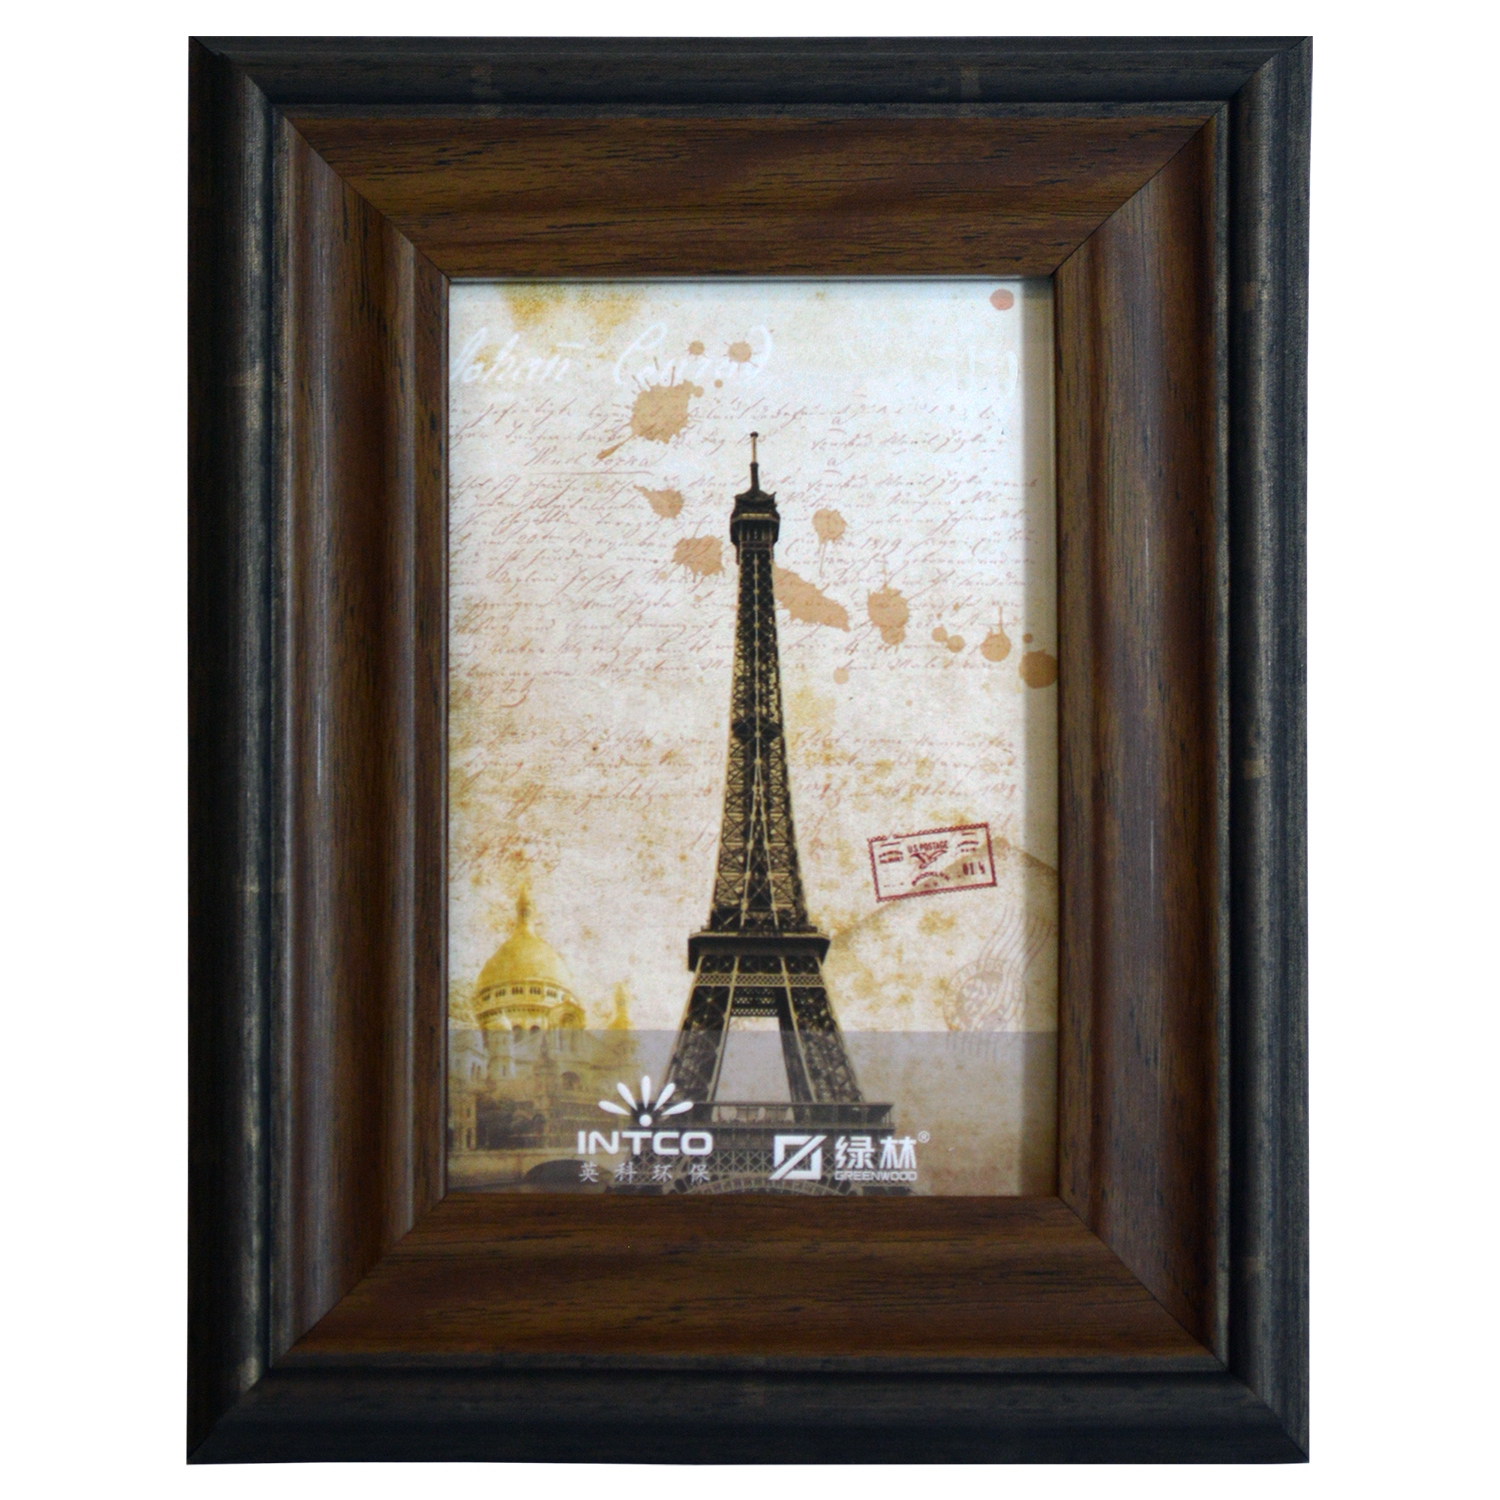 Smartparts digital picture frame images craft decoration ideas digital picture frame smartparts image collections craft smartparts picture frame gallery craft decoration ideas smartparts picture jeuxipadfo Gallery